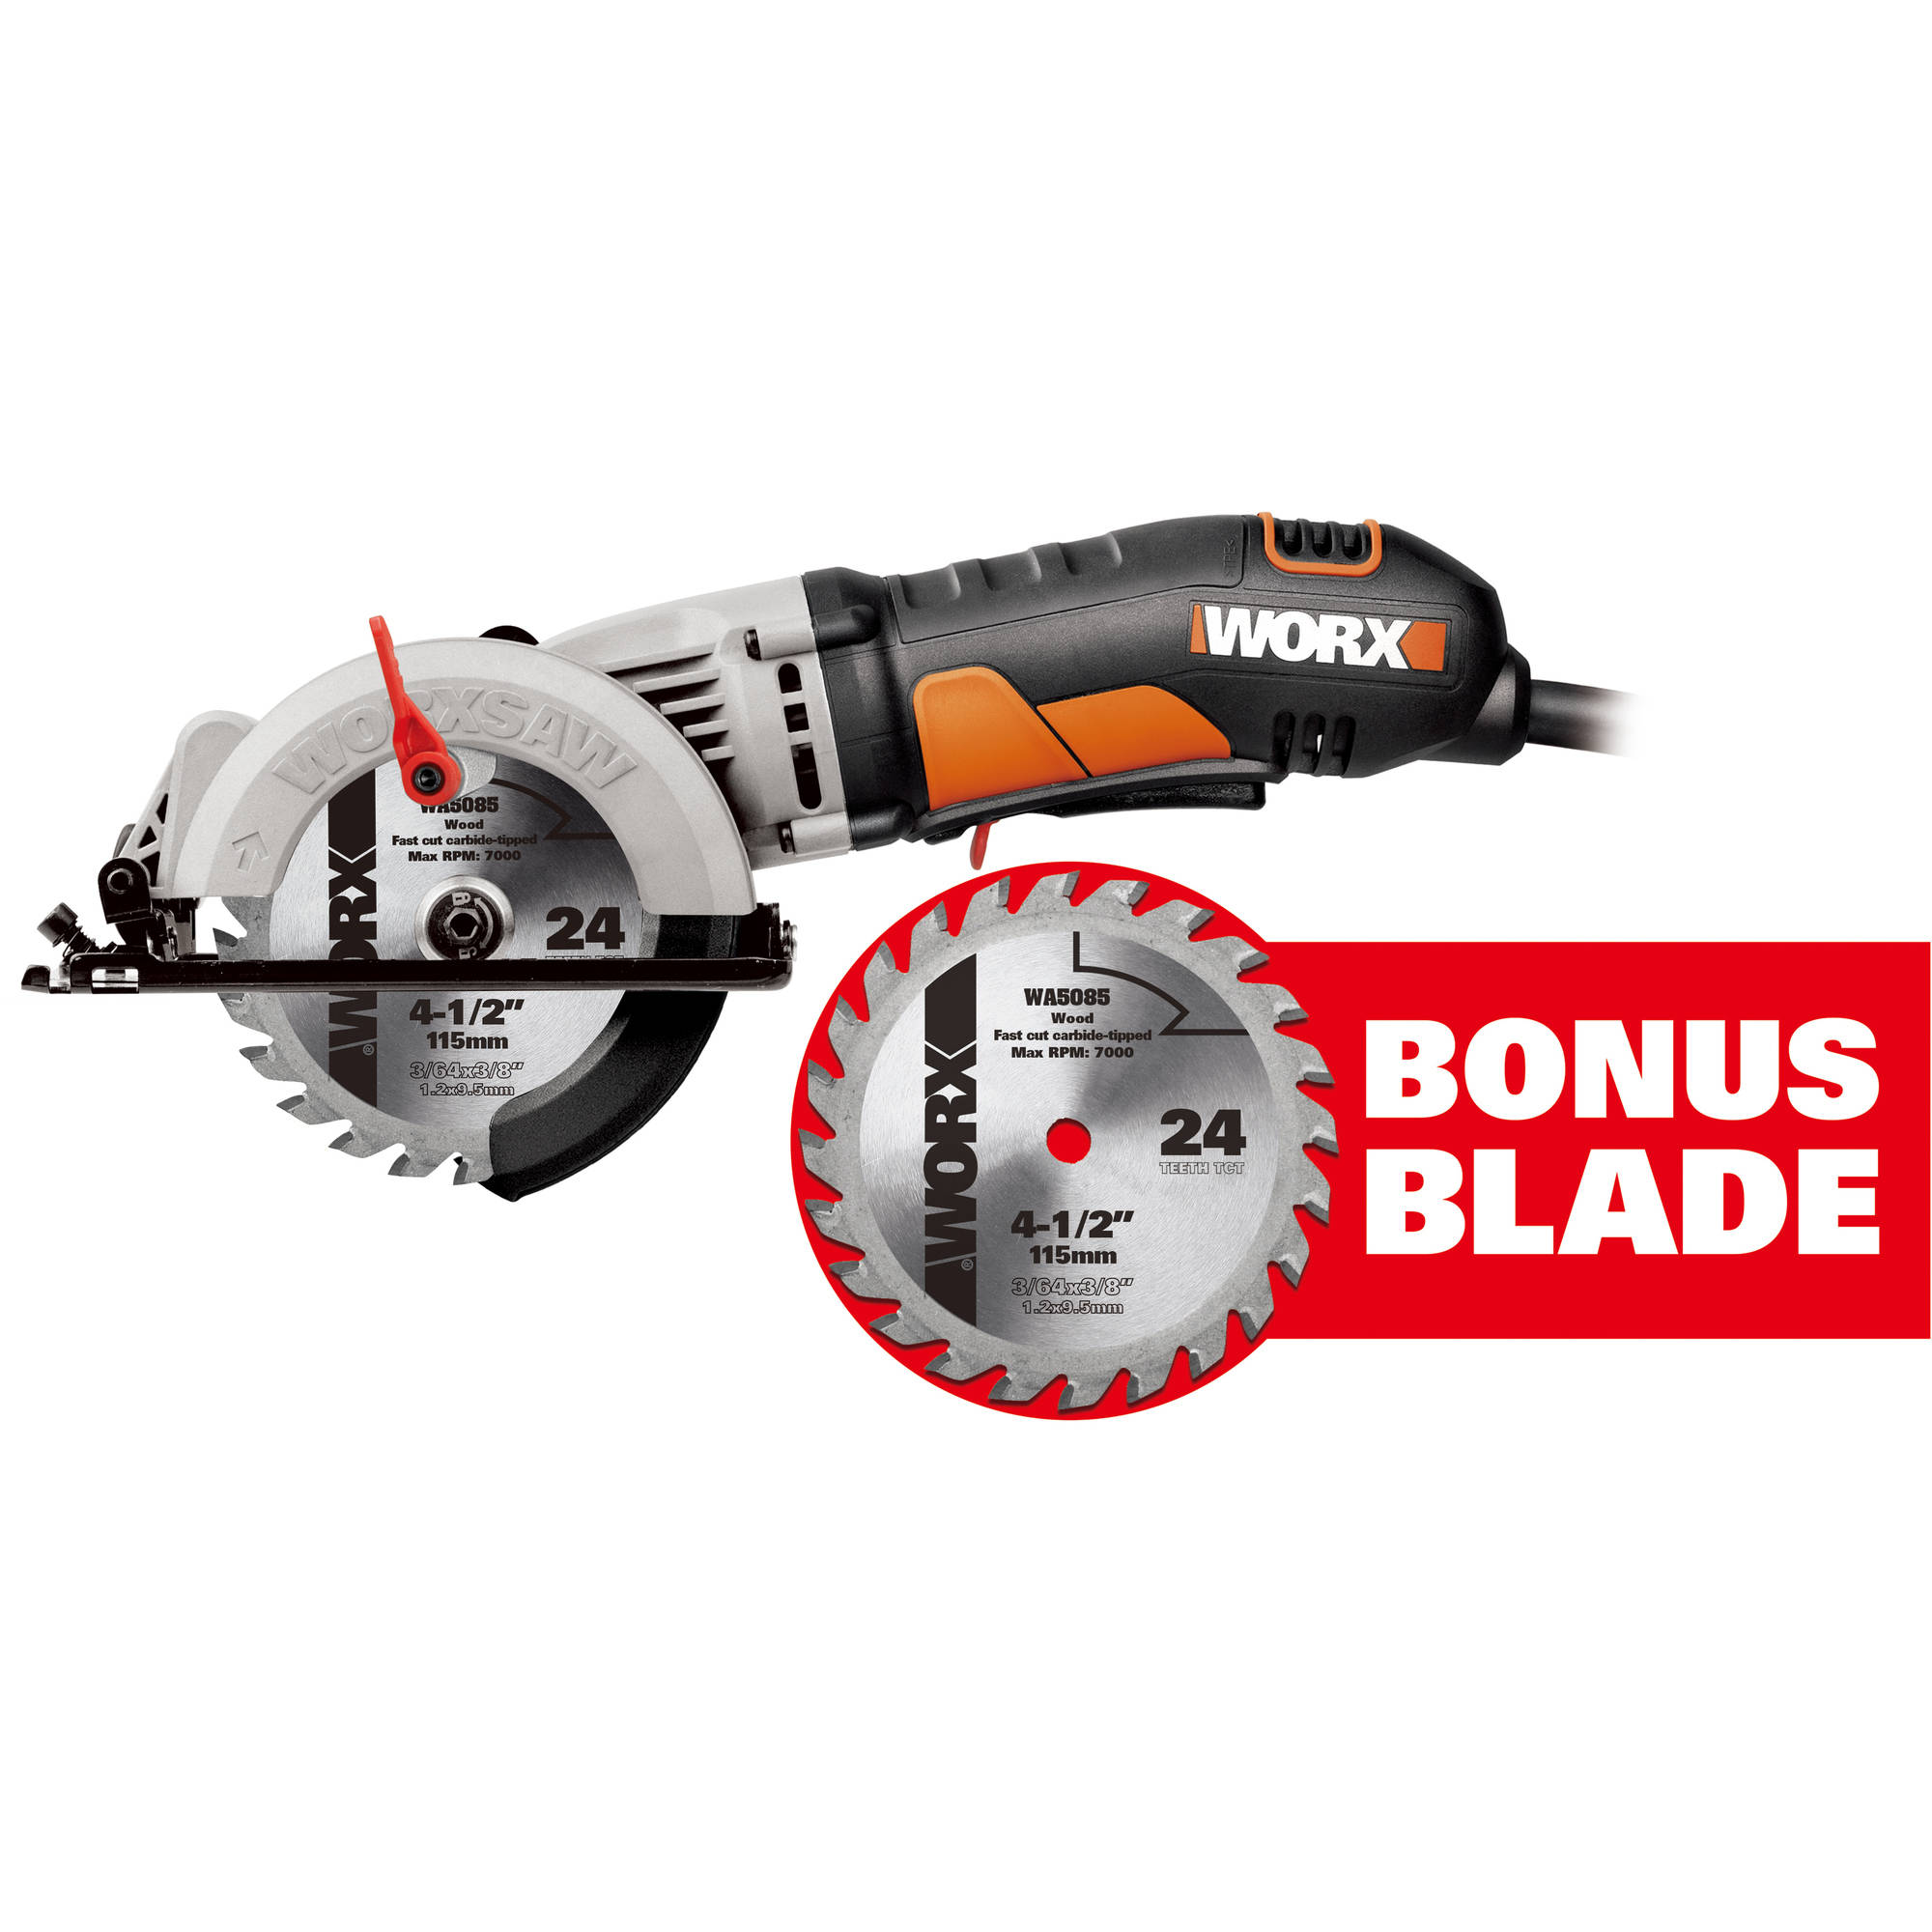 "Worx 4-1/2"" Compact Circular Saw with Bonus Blade"